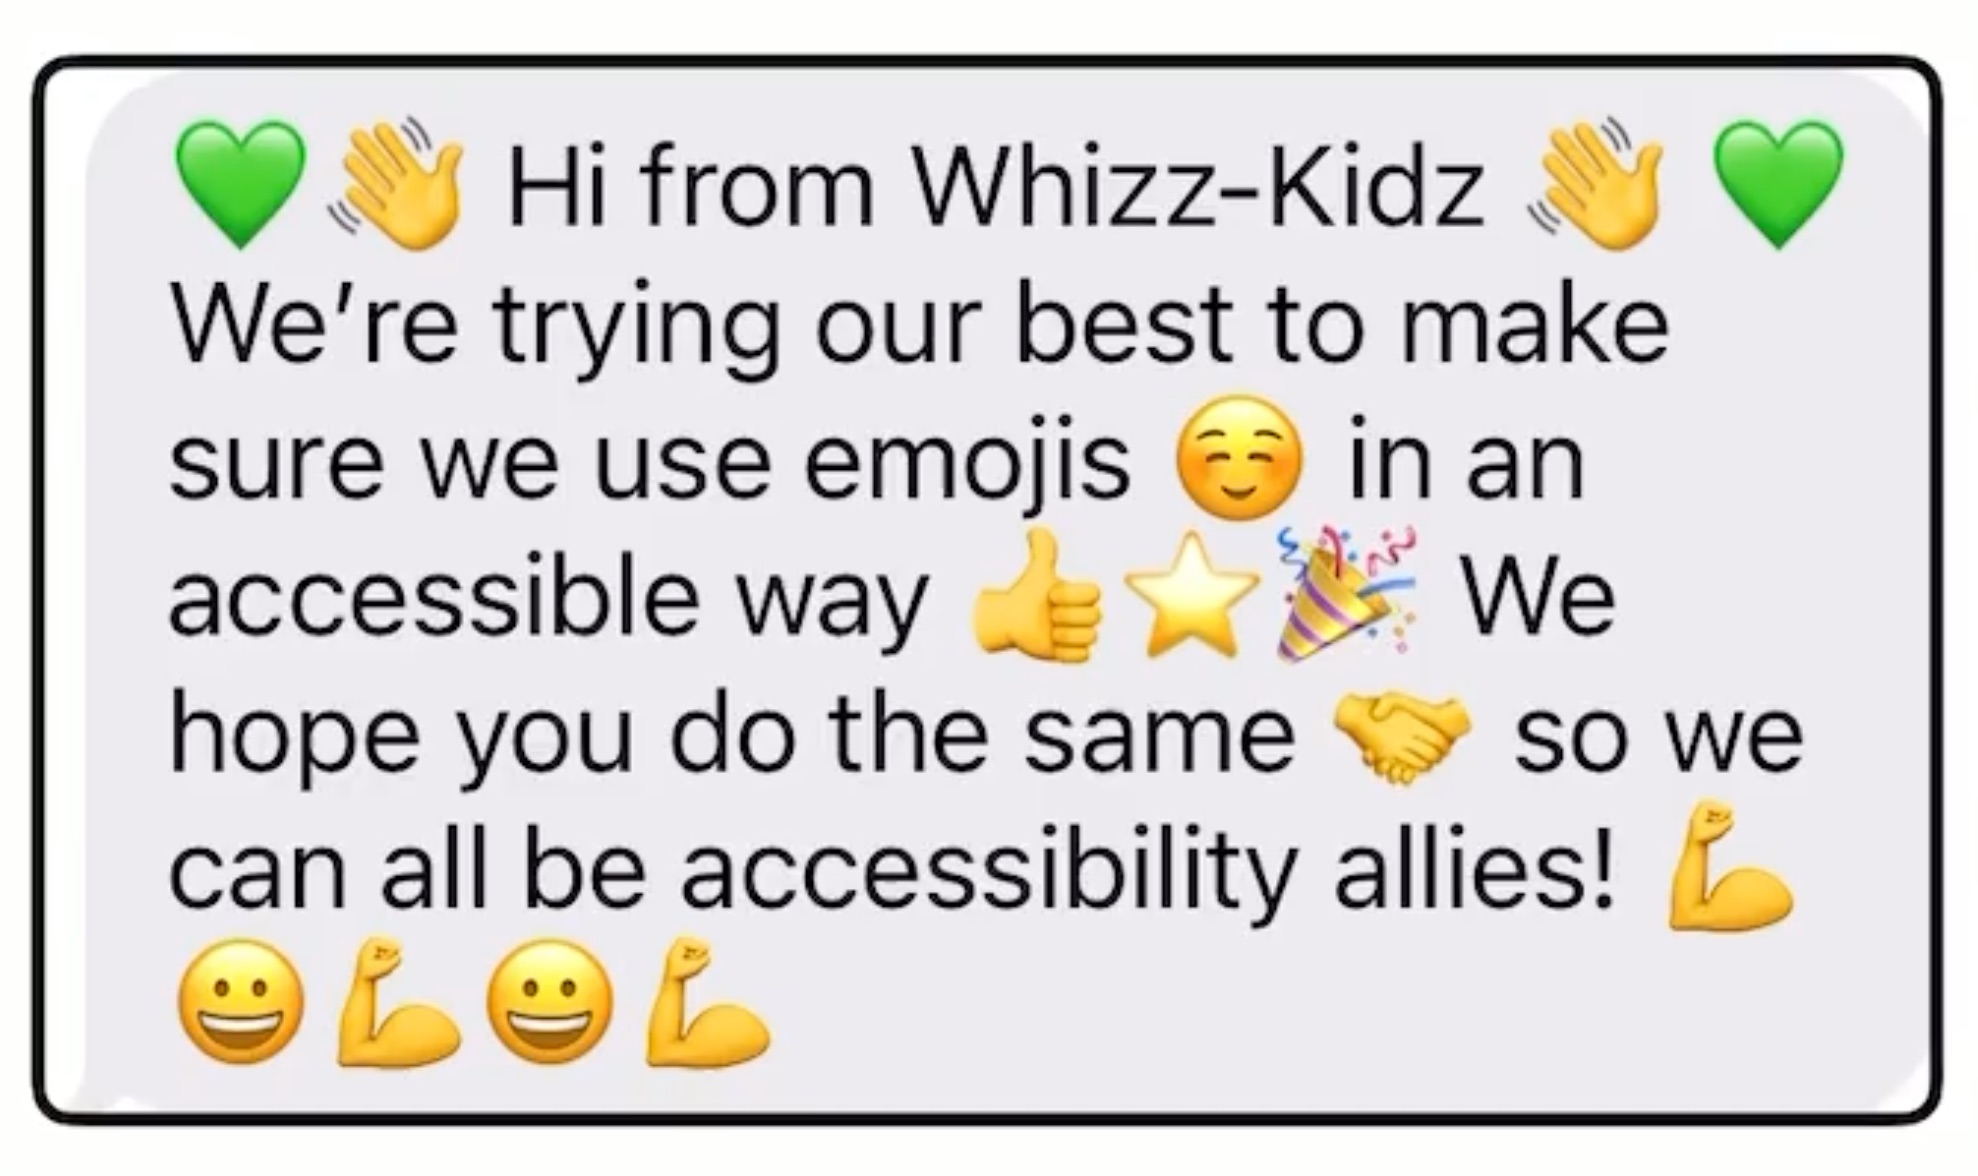 A message from Whizz-Kidz showing how NOT to use emojis